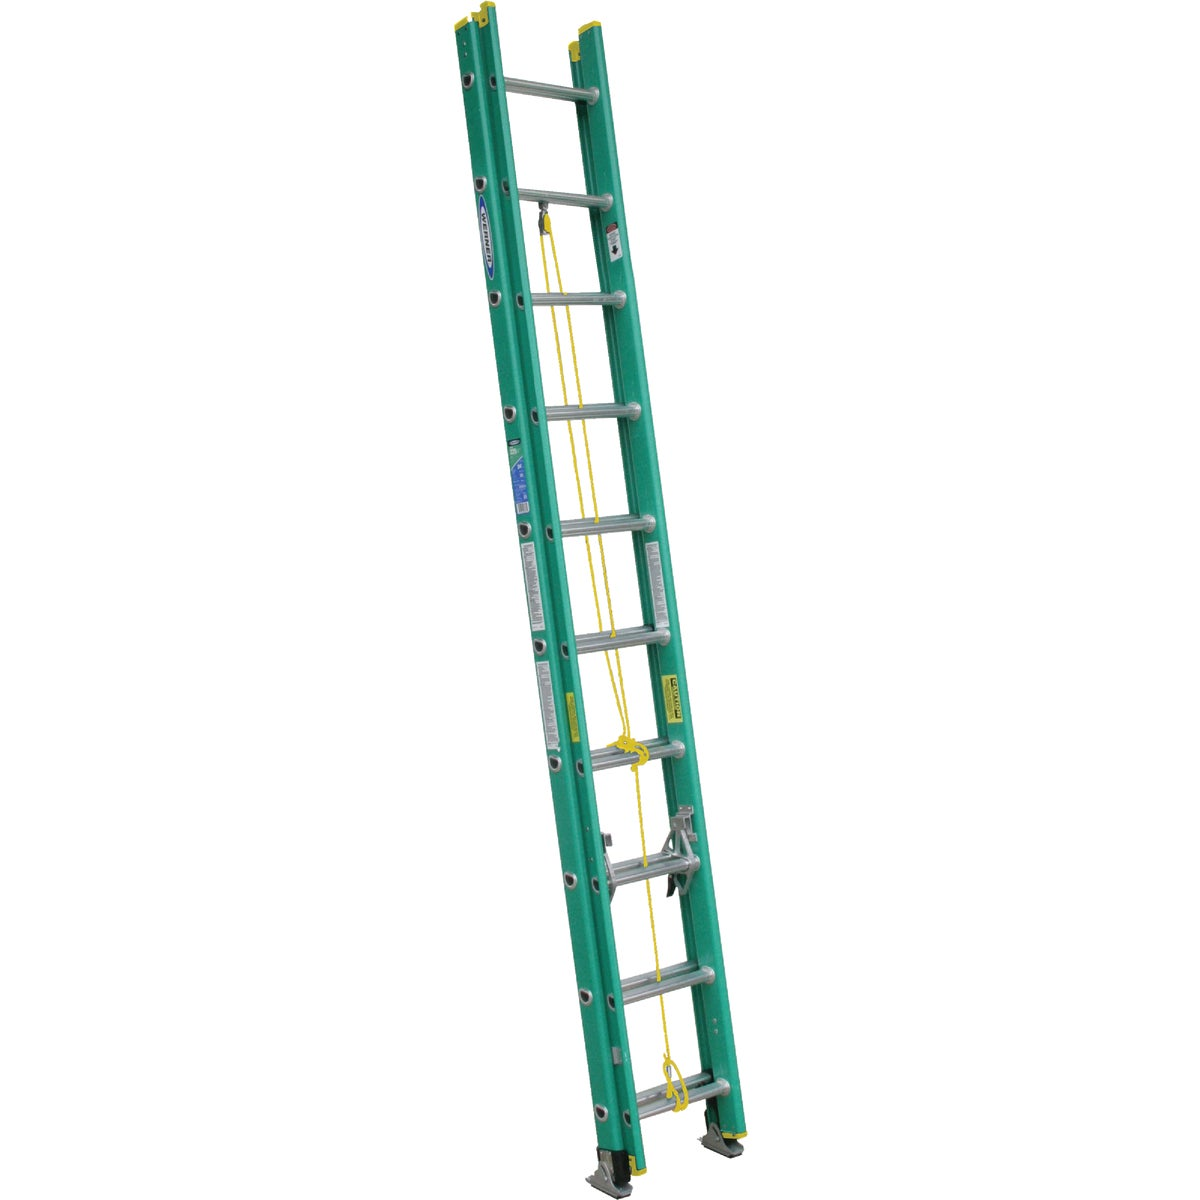 T-2 20' FBGL EXT LADDER - D5920-2 by Werner Ladder